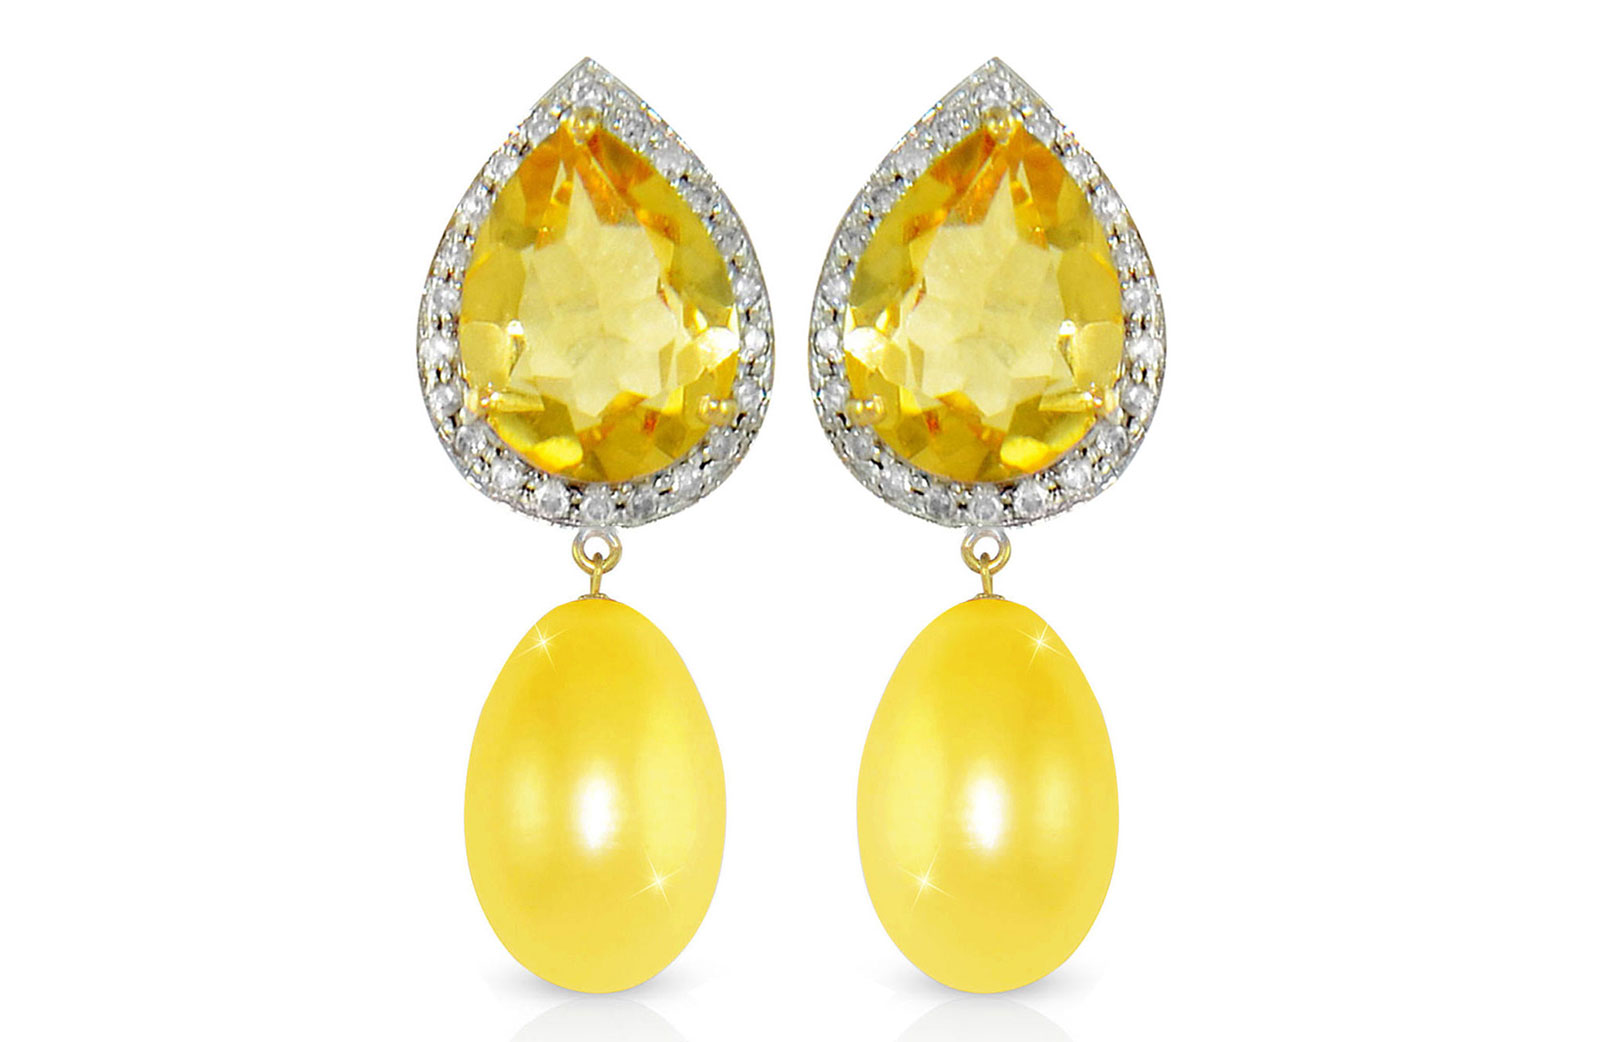 Vera Perla 18K Gold 0.24ct Diamonds, Citrine and 13mm Golden Pearl Earrings